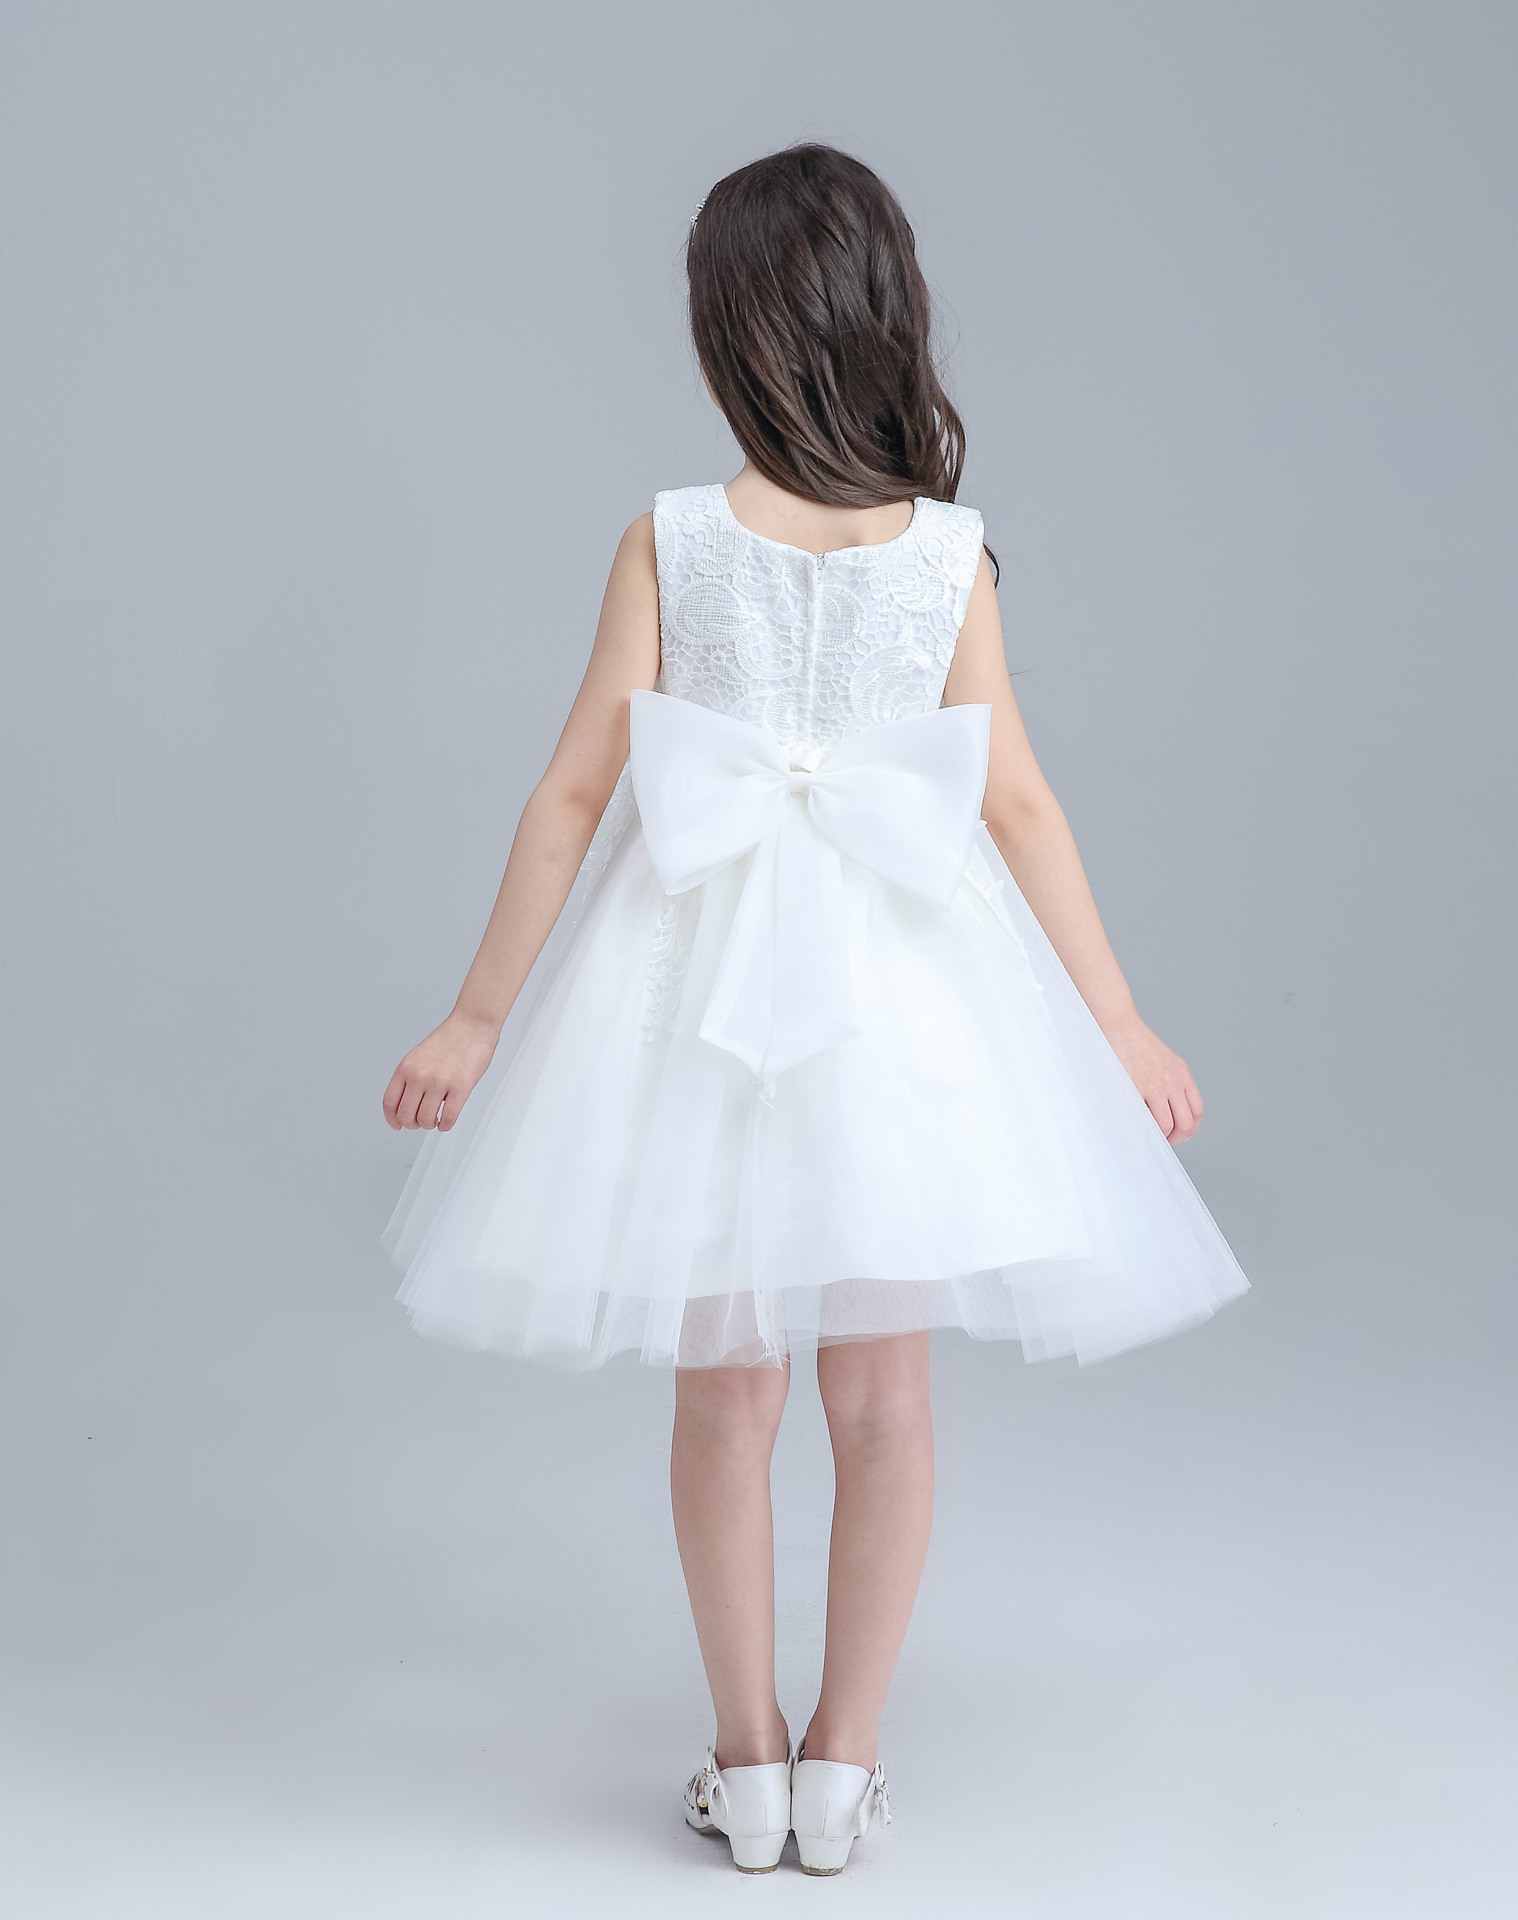 Christmas Party Formal White Girls Dress with Jacket Holiday Party ...